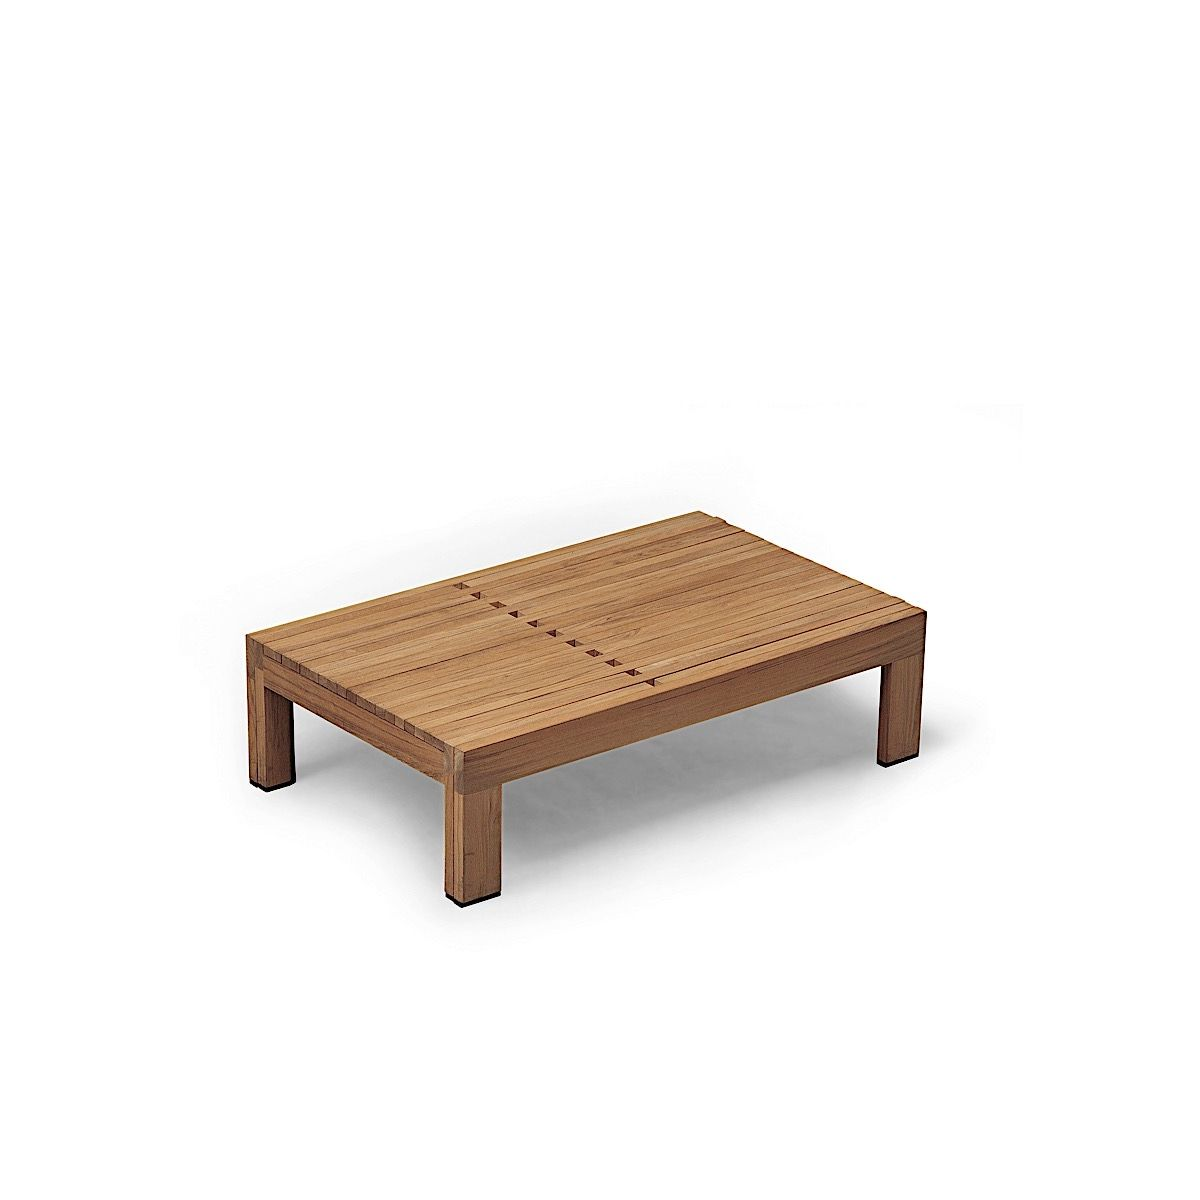 Riviera Sunbed folded into coffee table